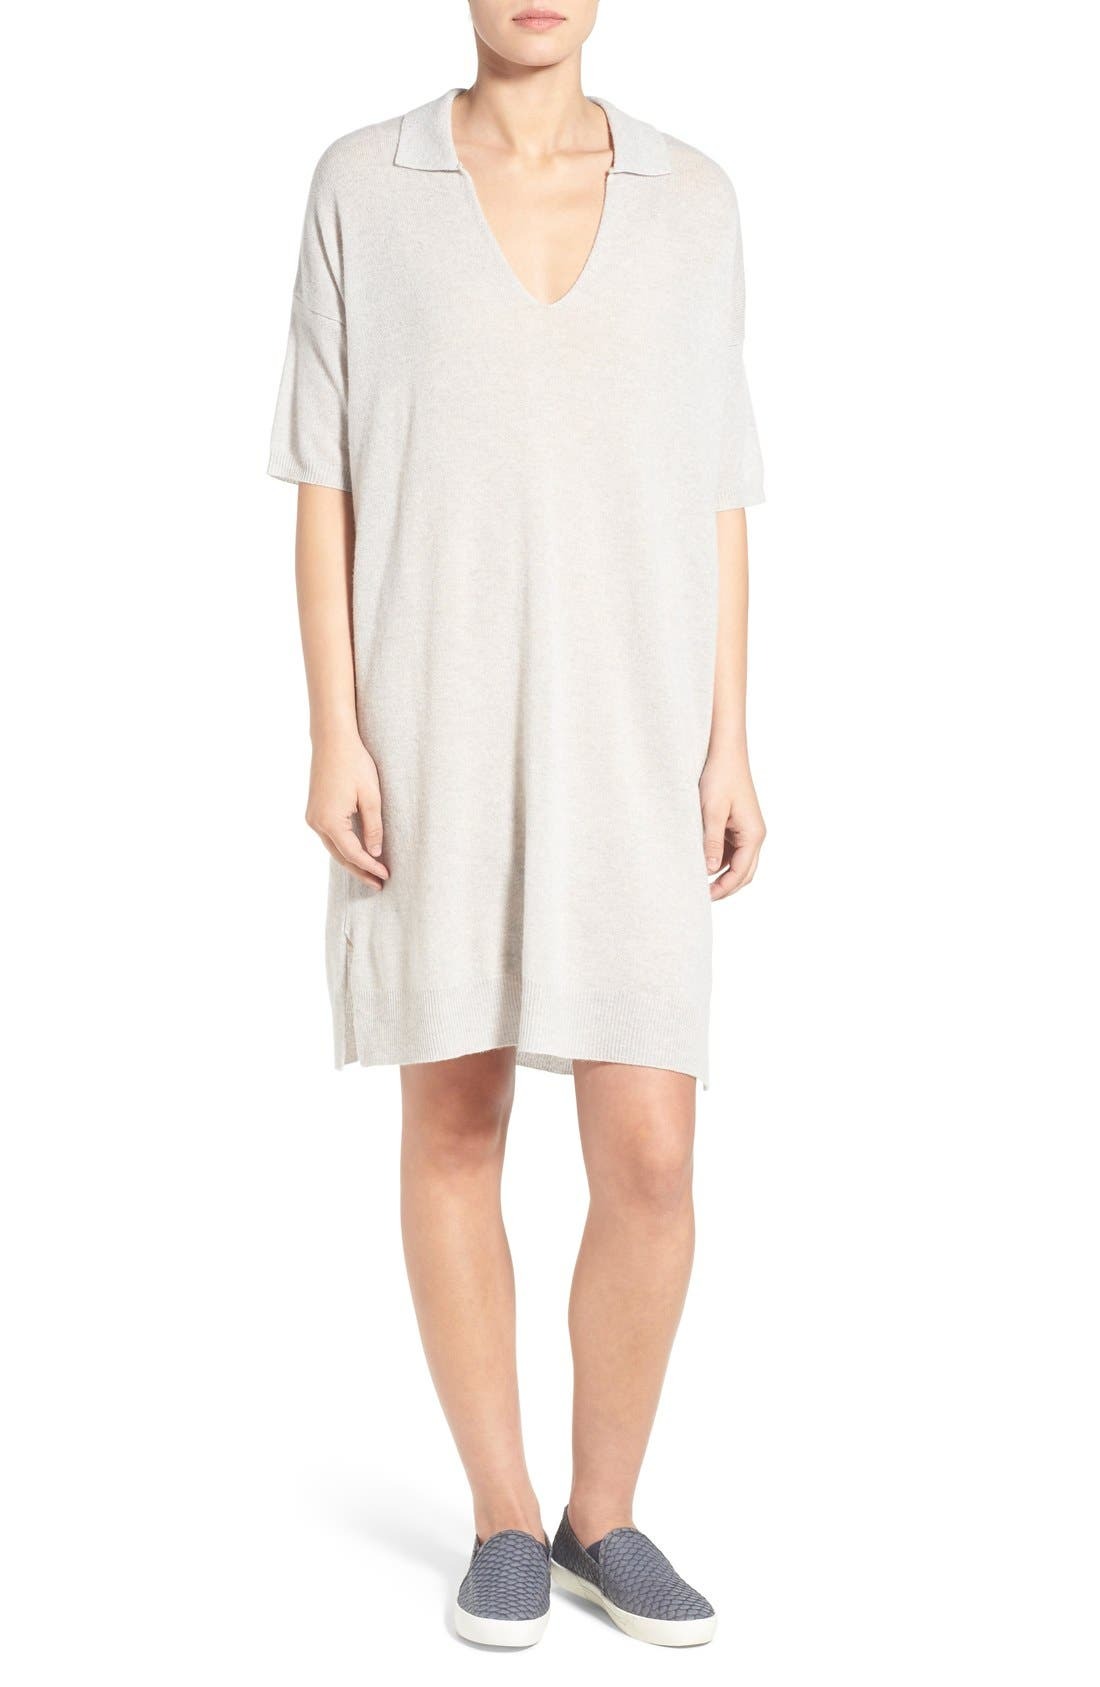 James Perse Oversize Cashmere Shift Dress